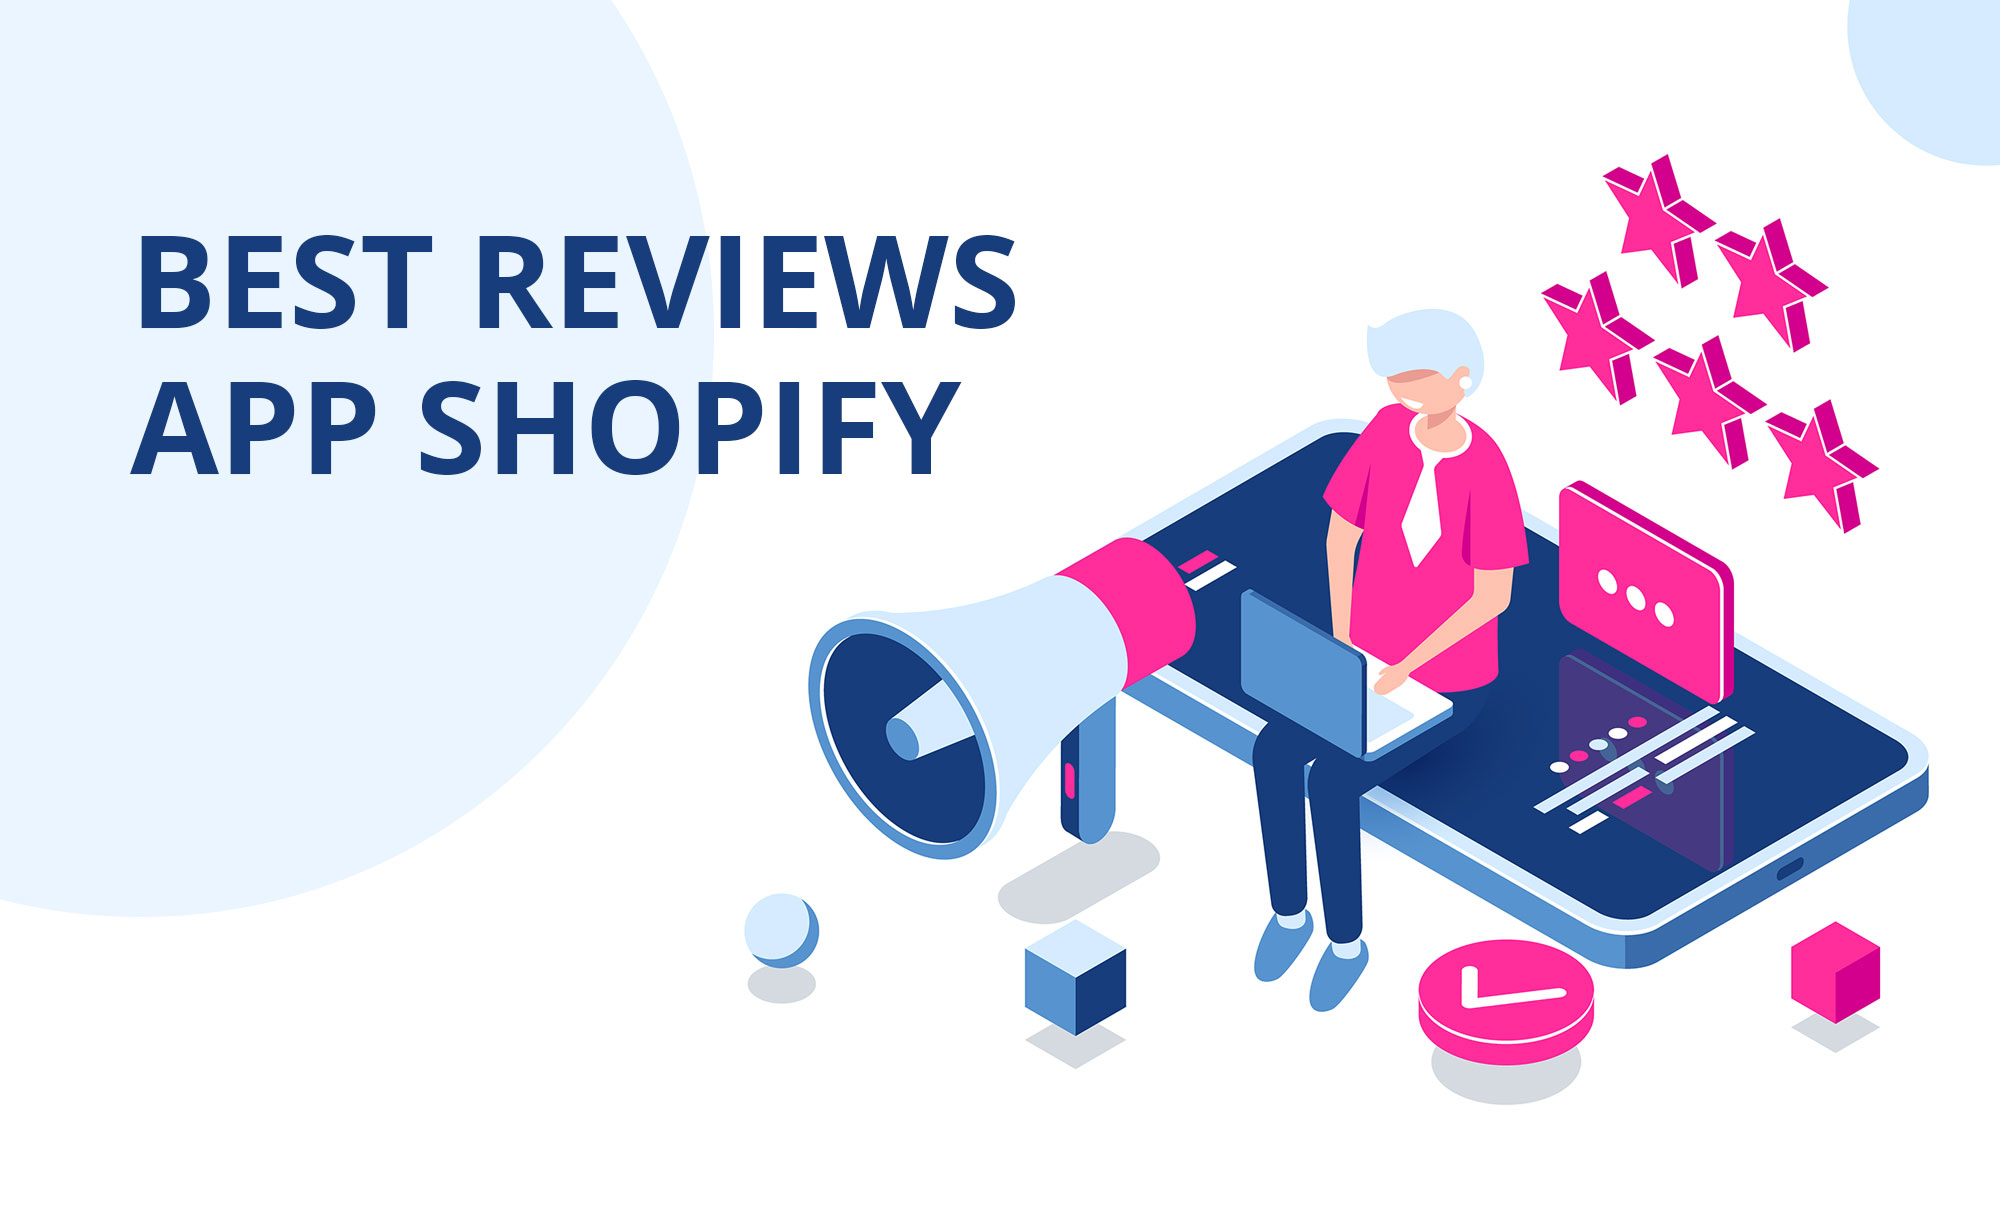 What is the importance of a Product Reviews app for shopify store